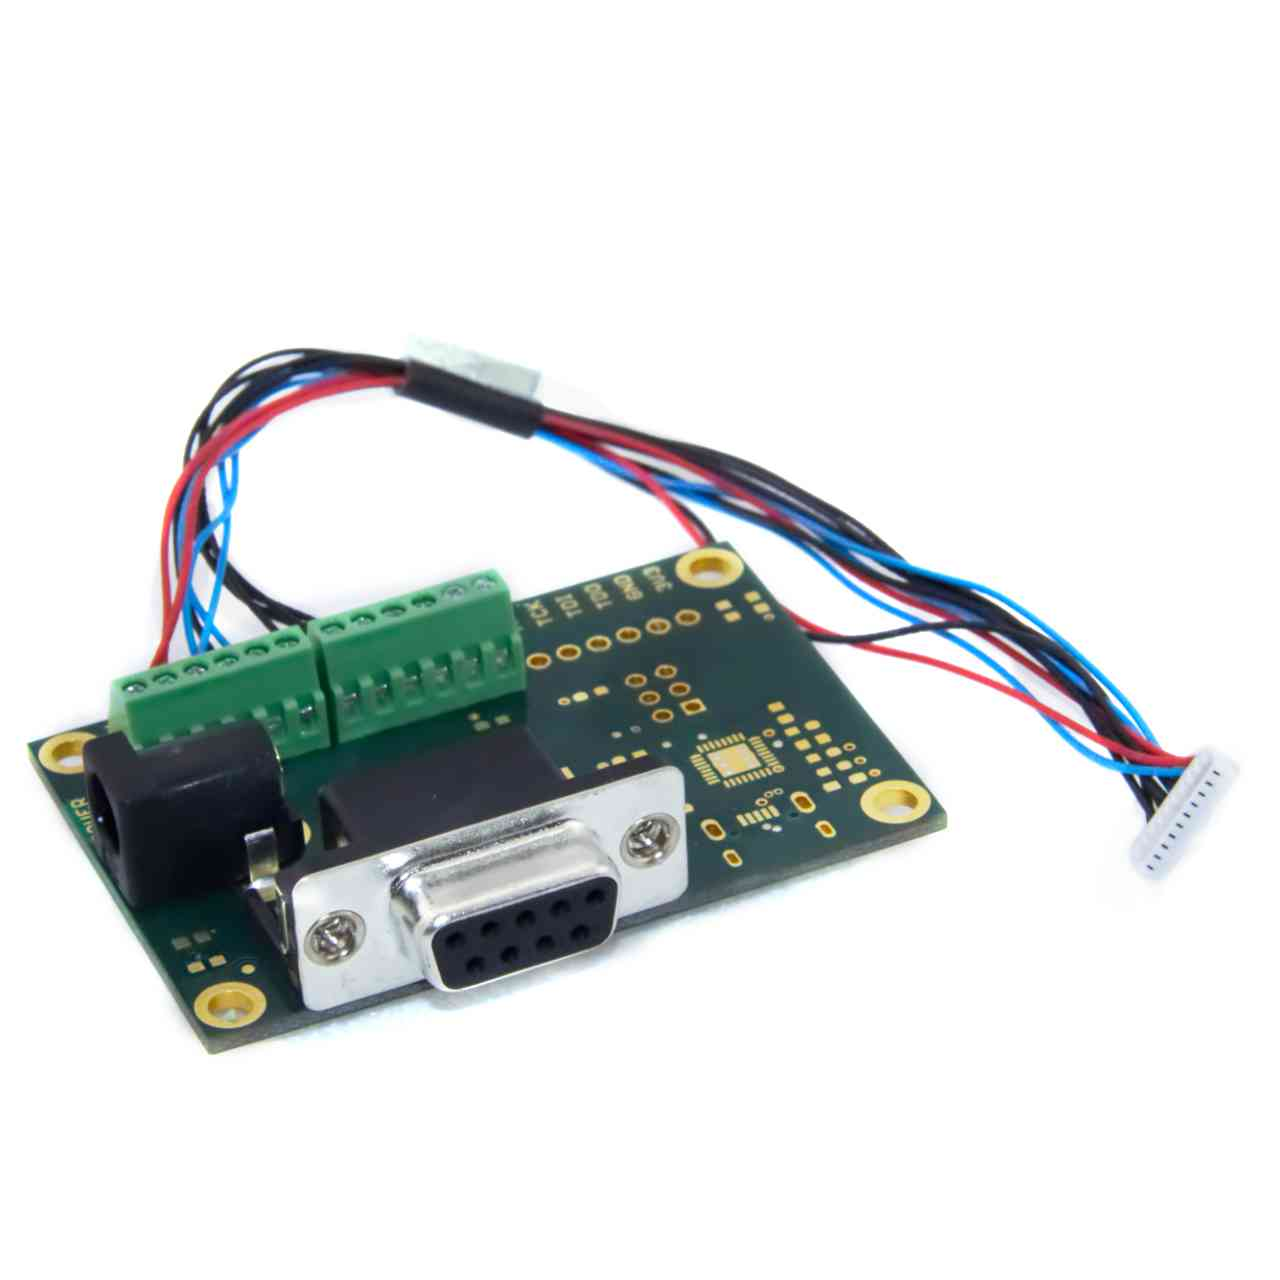 EK-PA1100-USB |Power supply and control interface board for USB